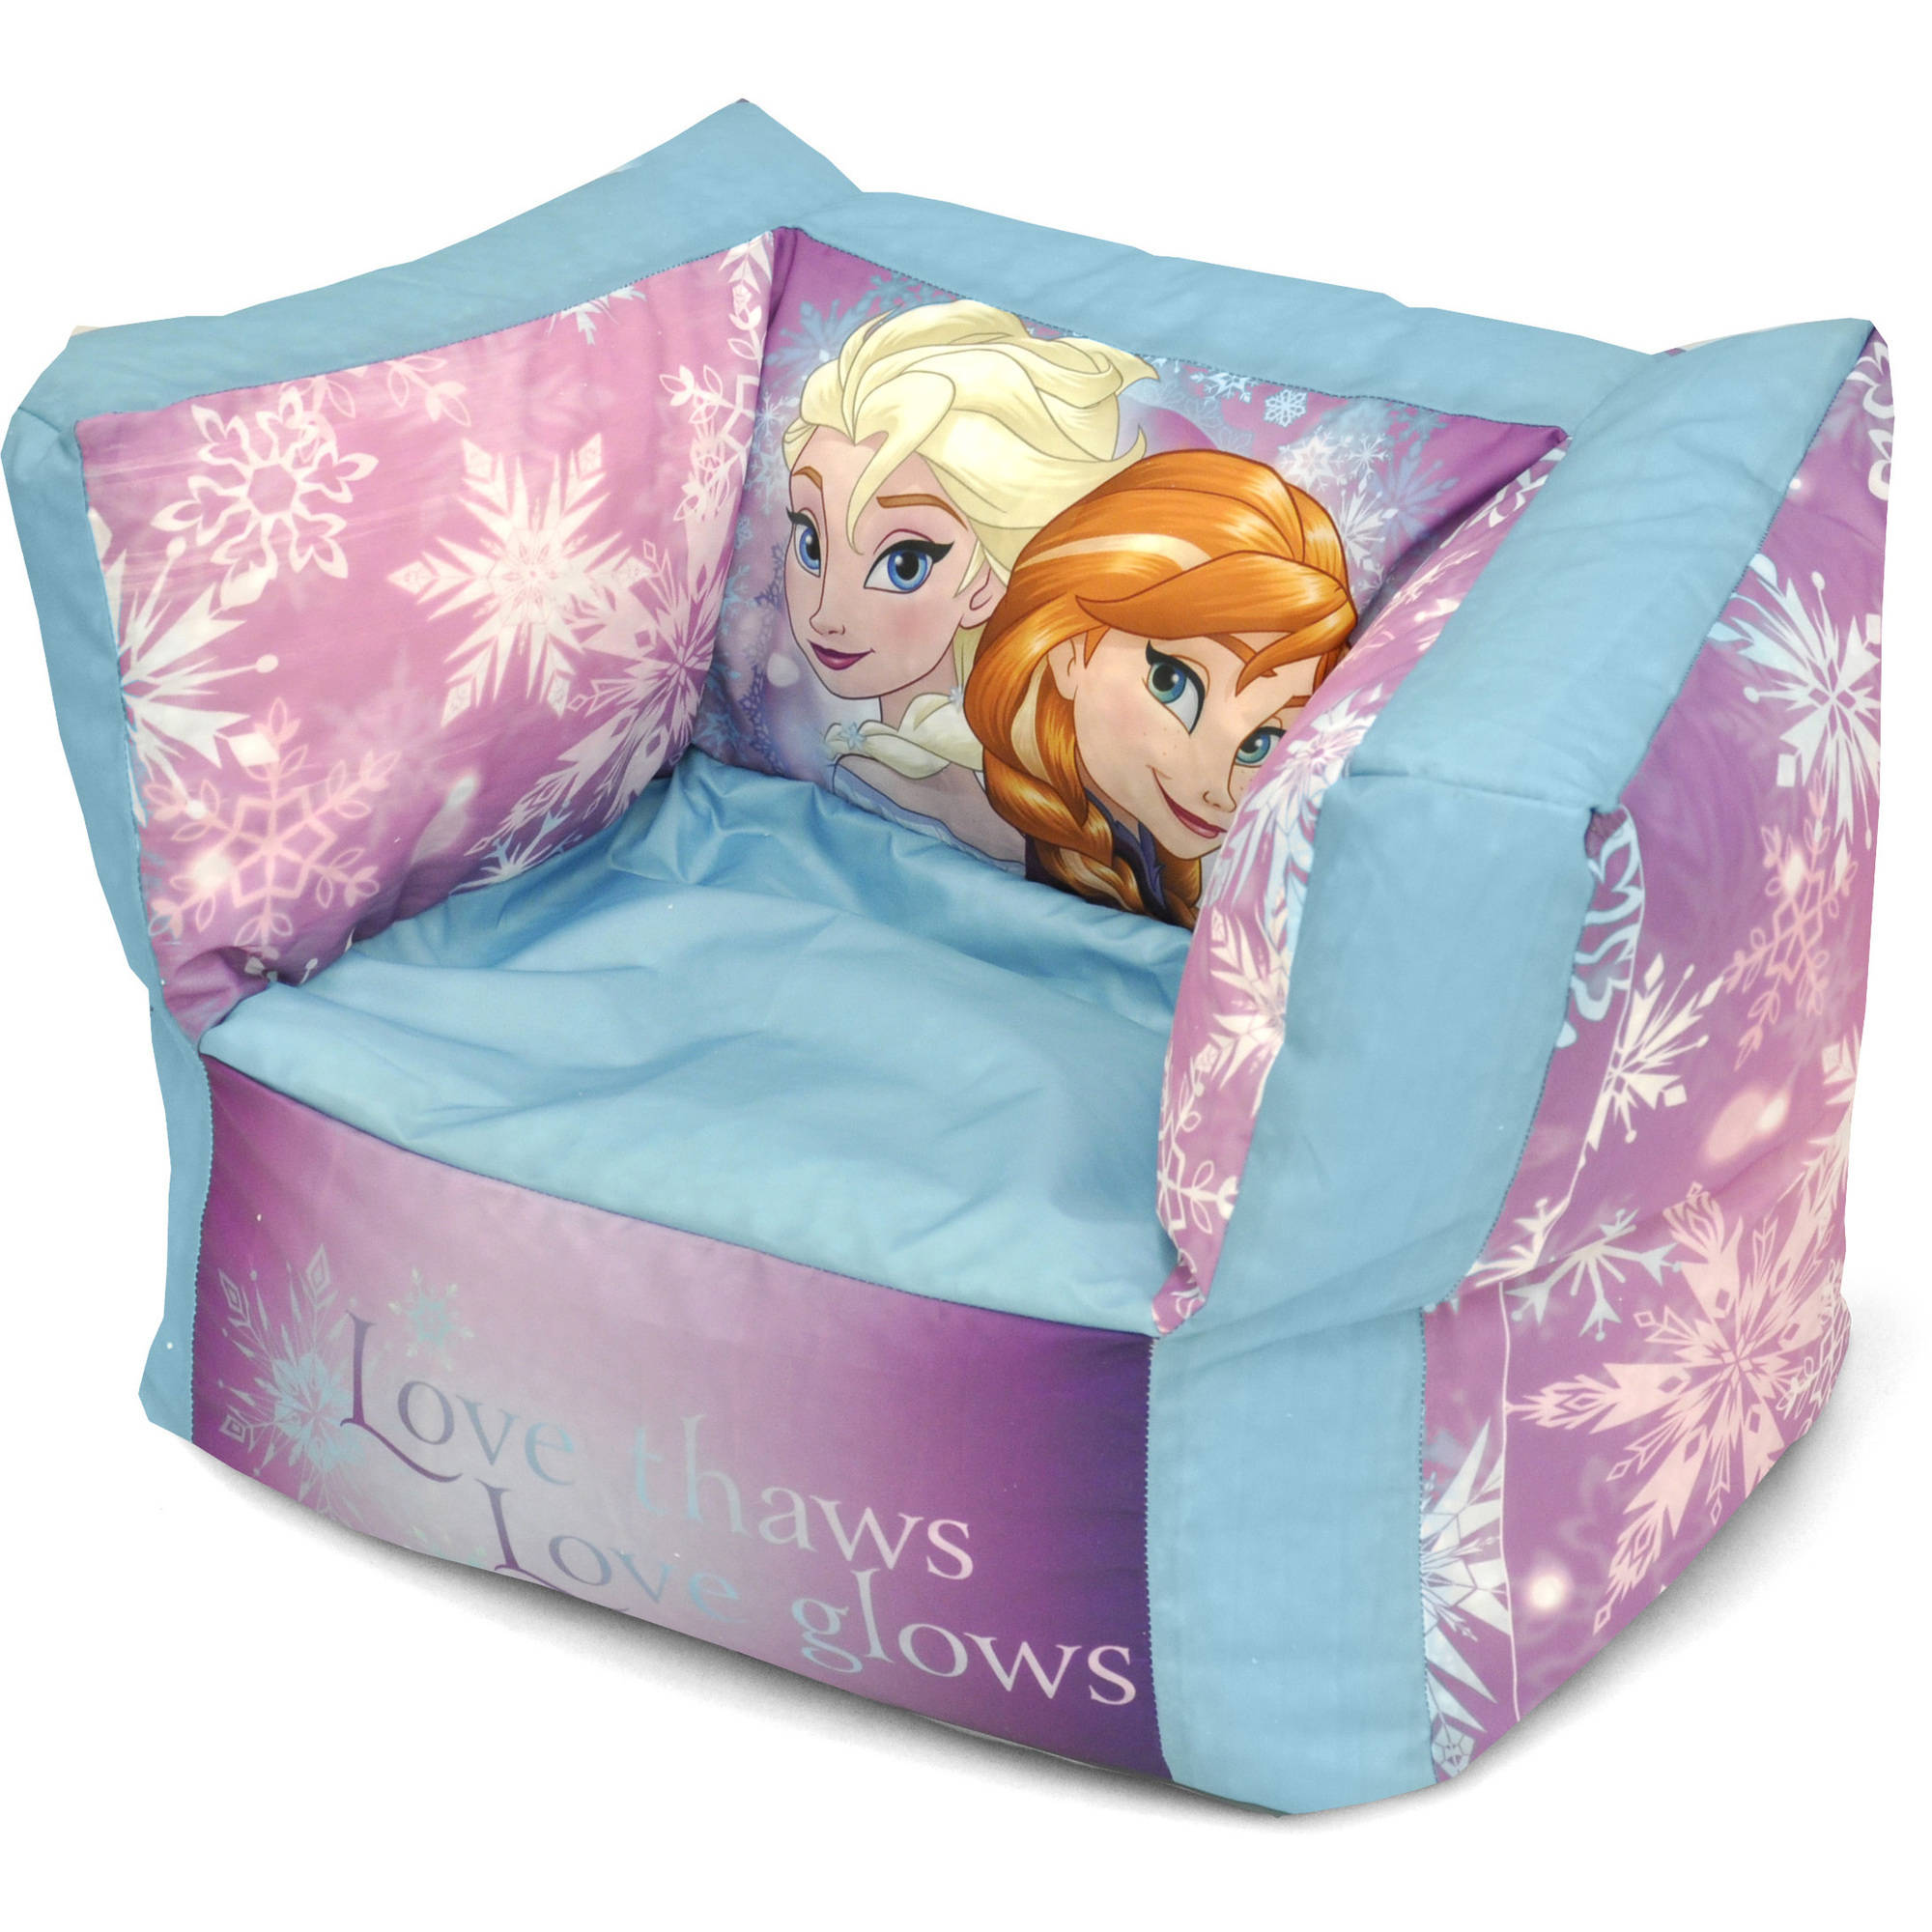 Frozen Square Bean Bag Chair